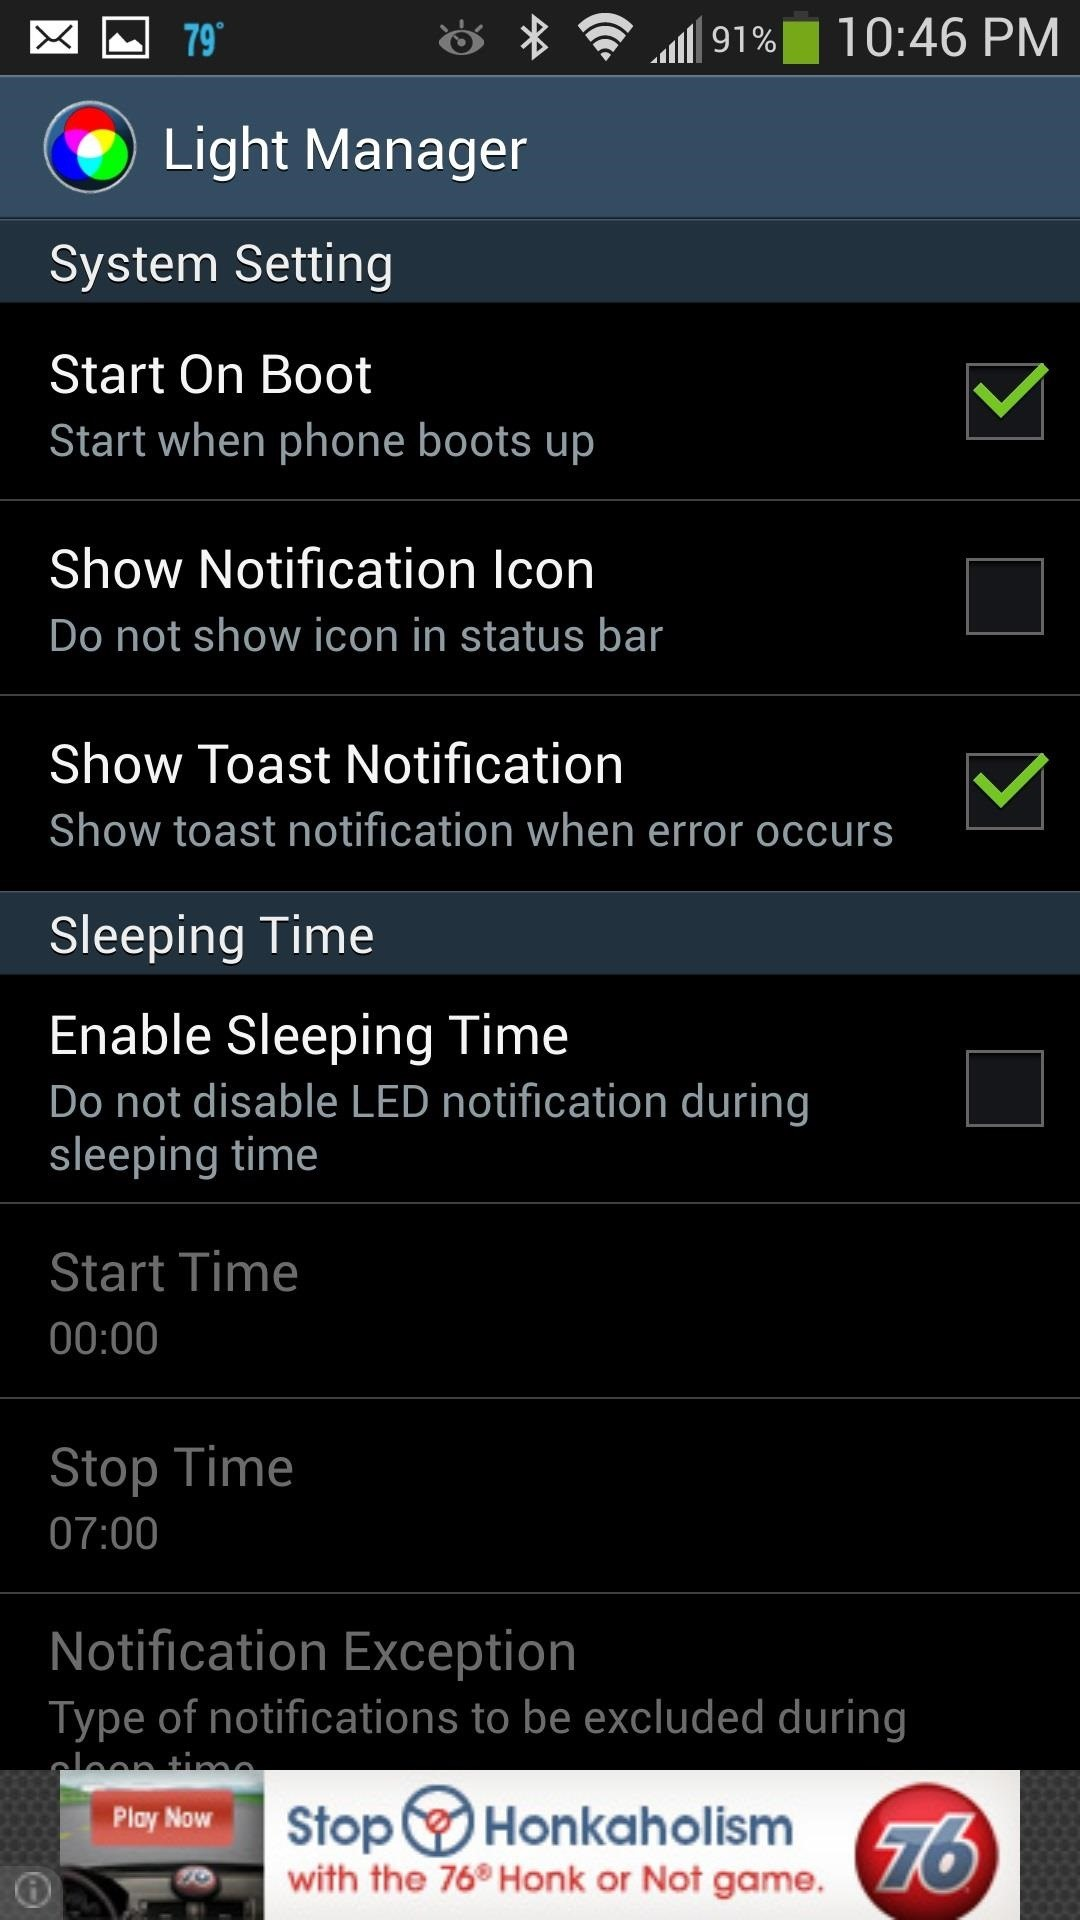 How to Identify Missed Alerts by Notification Type Just by Looking